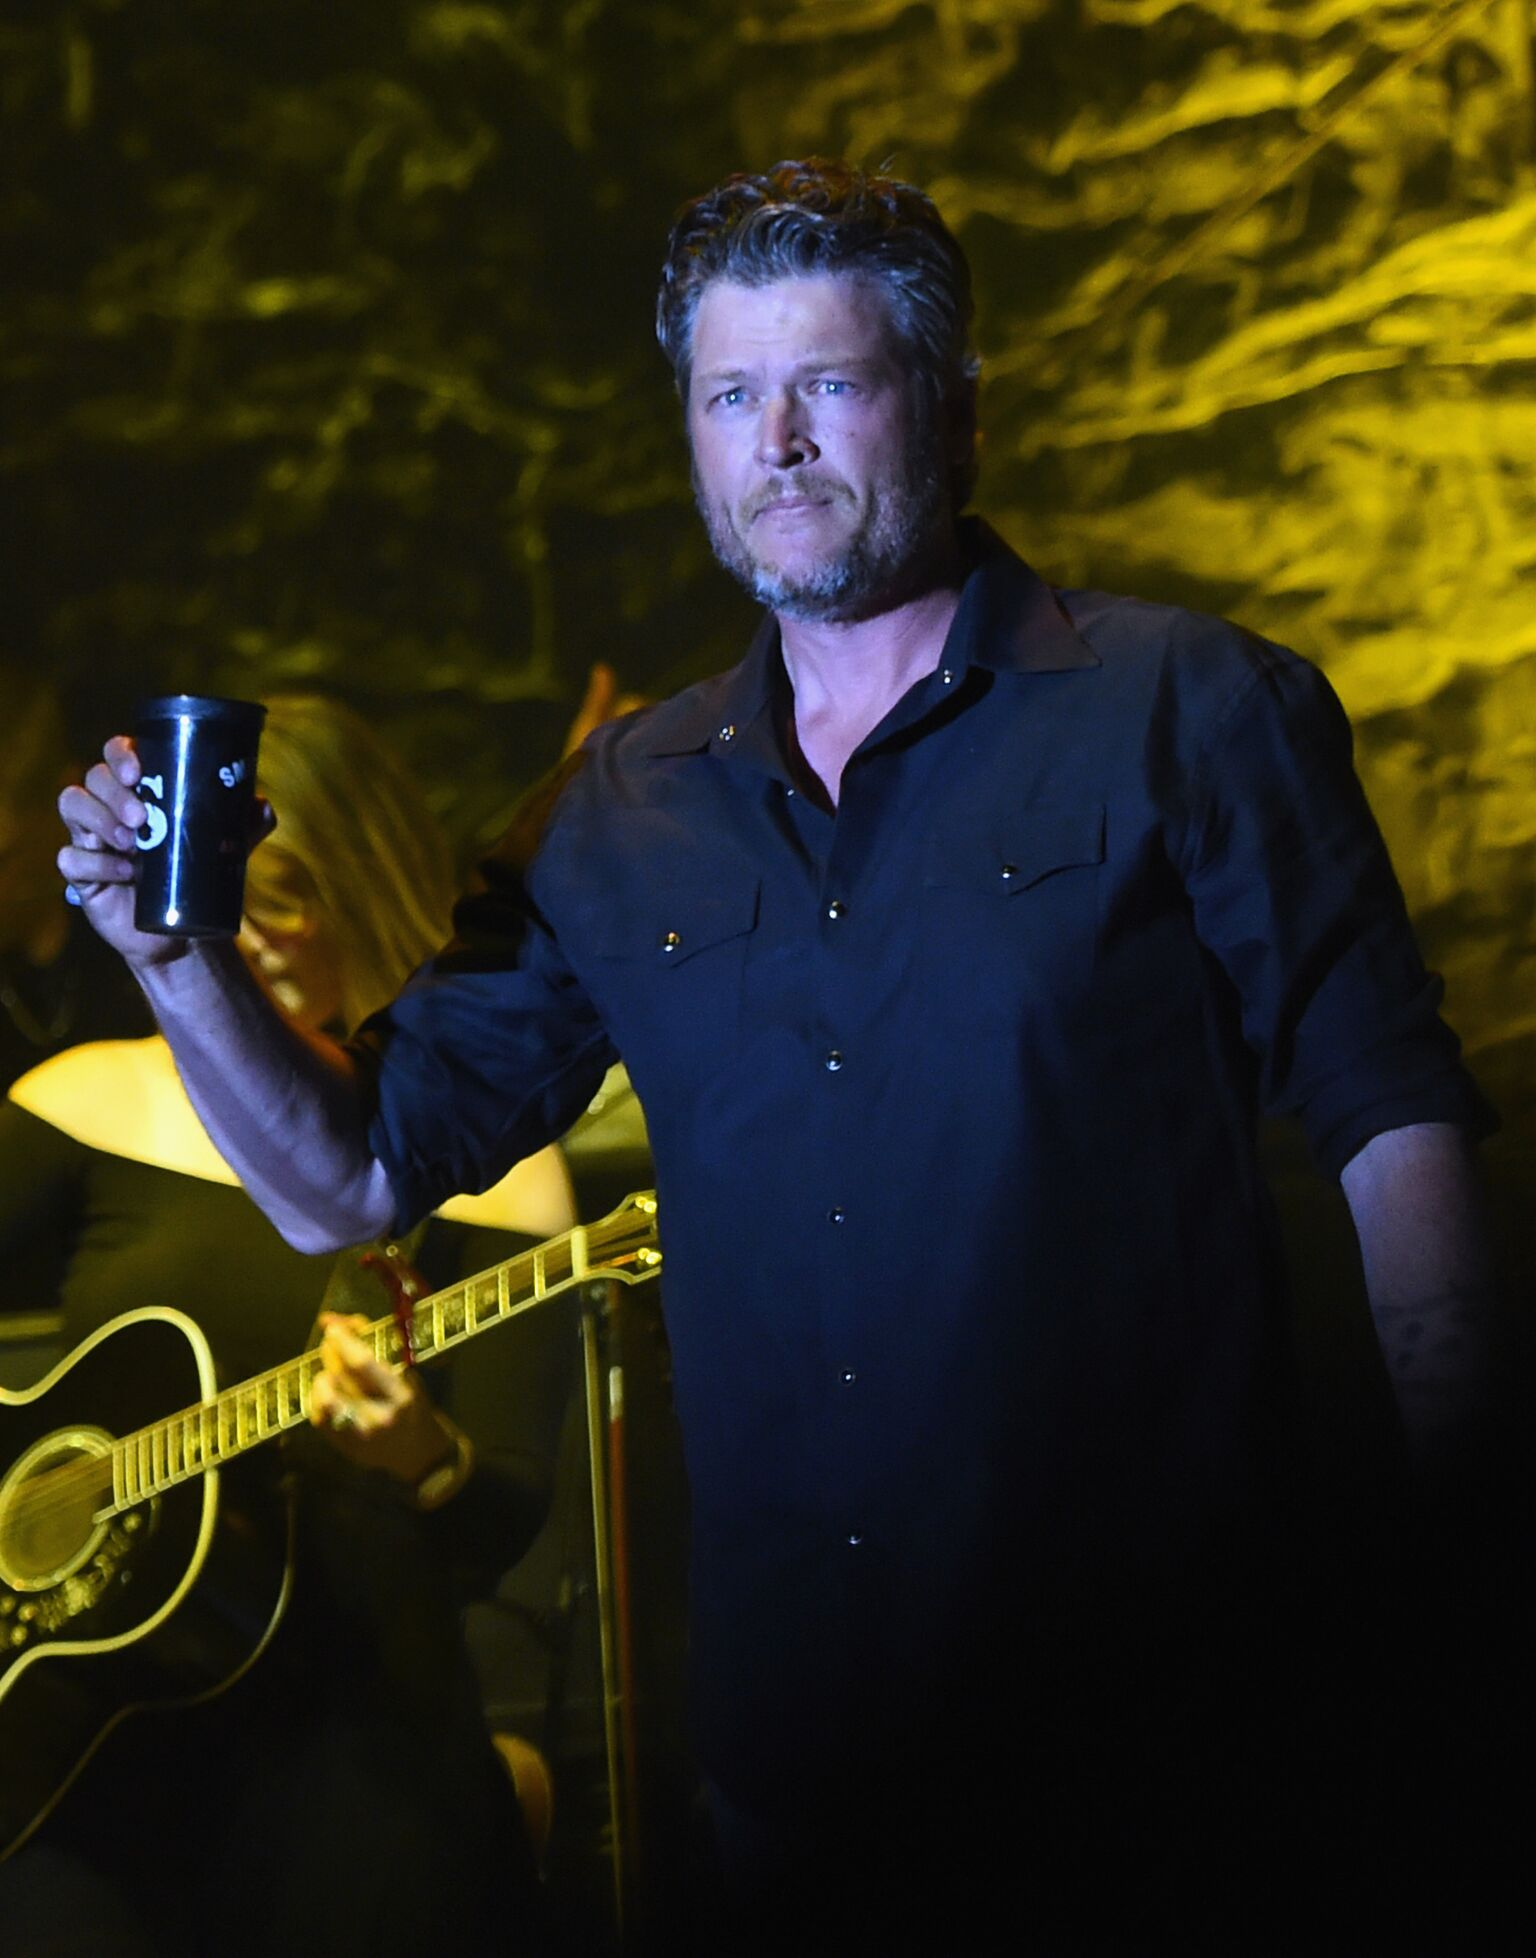 Blake Shelton performs on Day 4 - Country Thunder Music Festival Arizona | Getty Images